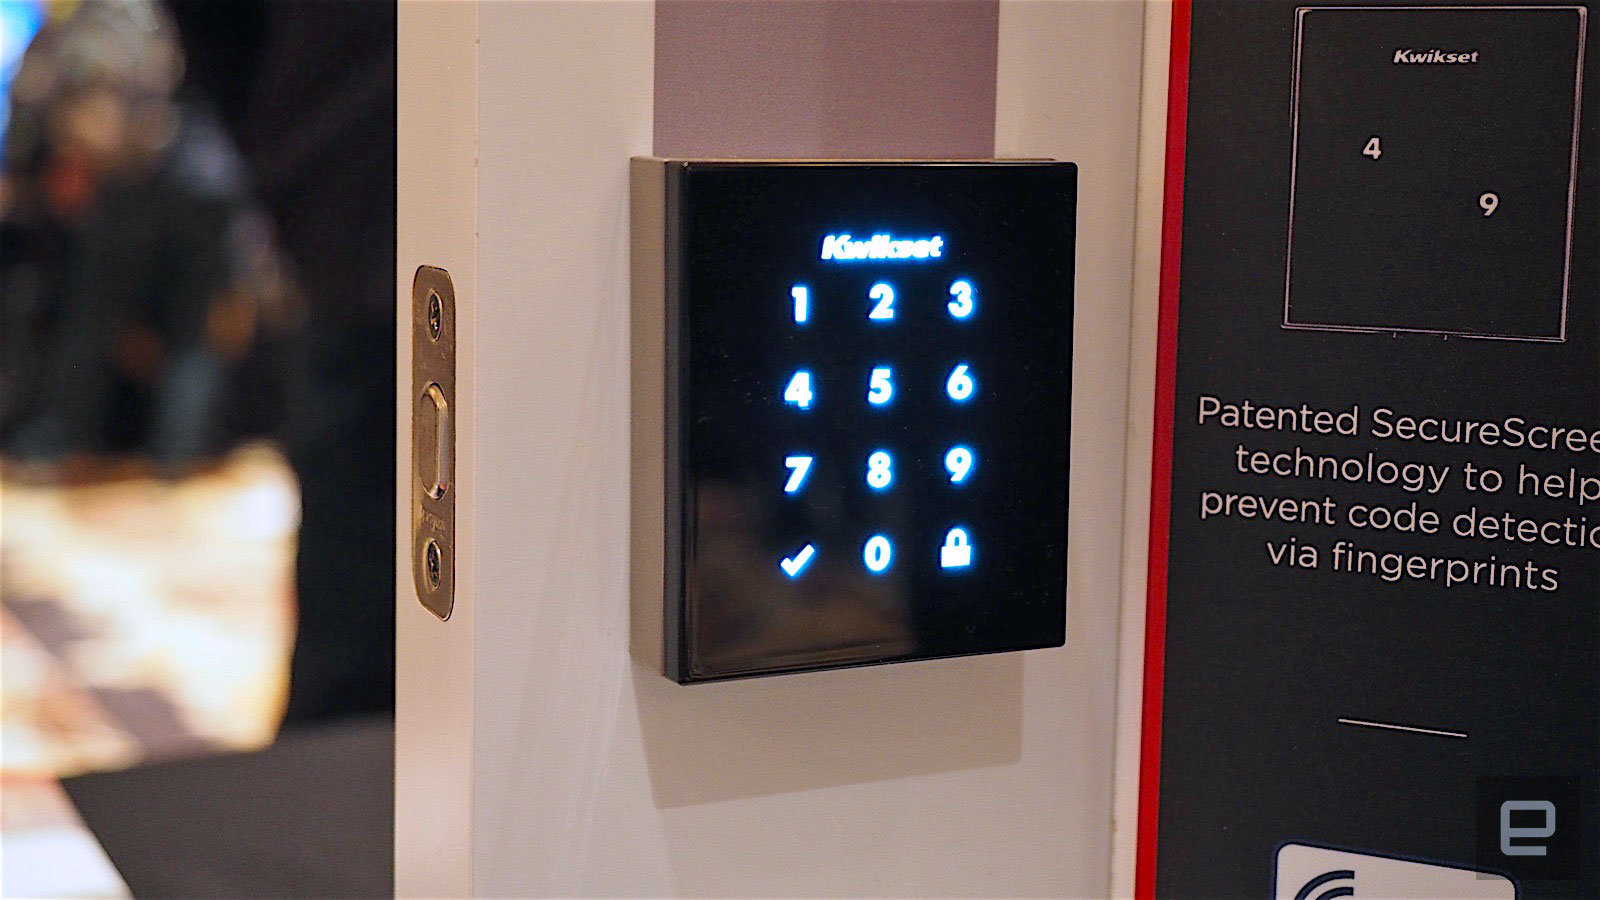 Touchscreen Smart Lock 27 image